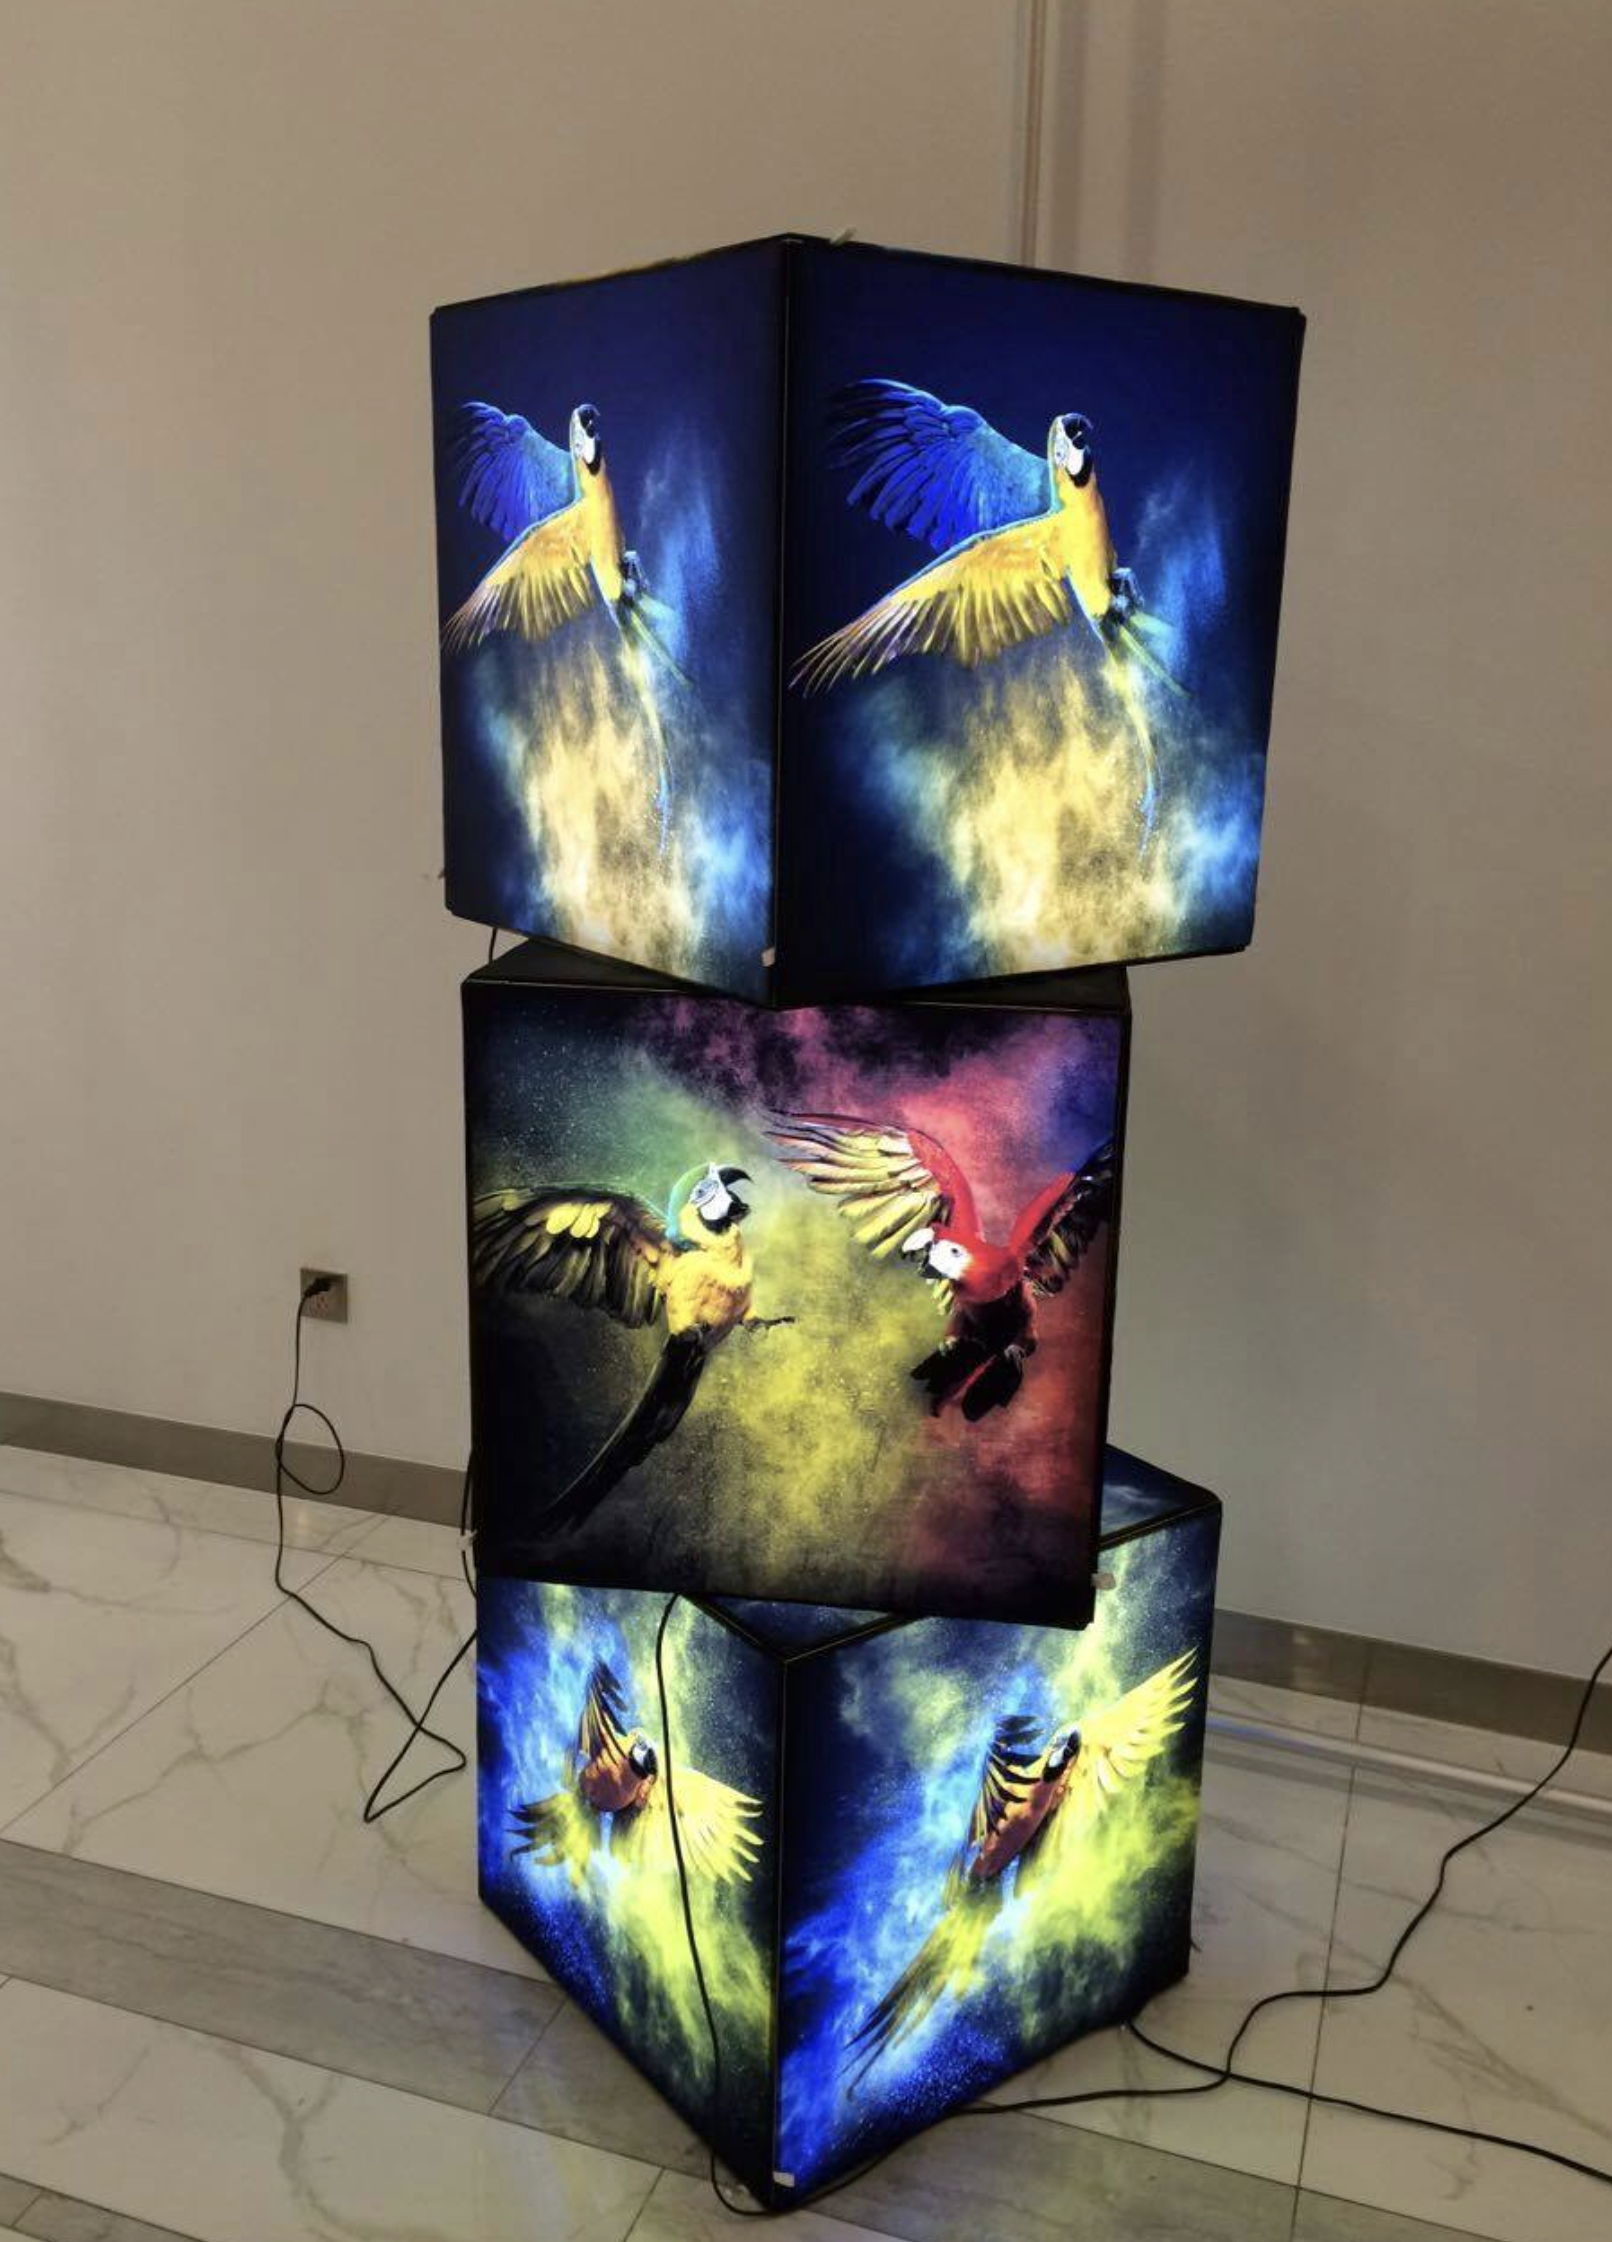 Aluminum light box display: High quality aluminum frame Easy to install and carry with small pieces Changeable tension fabric graphics